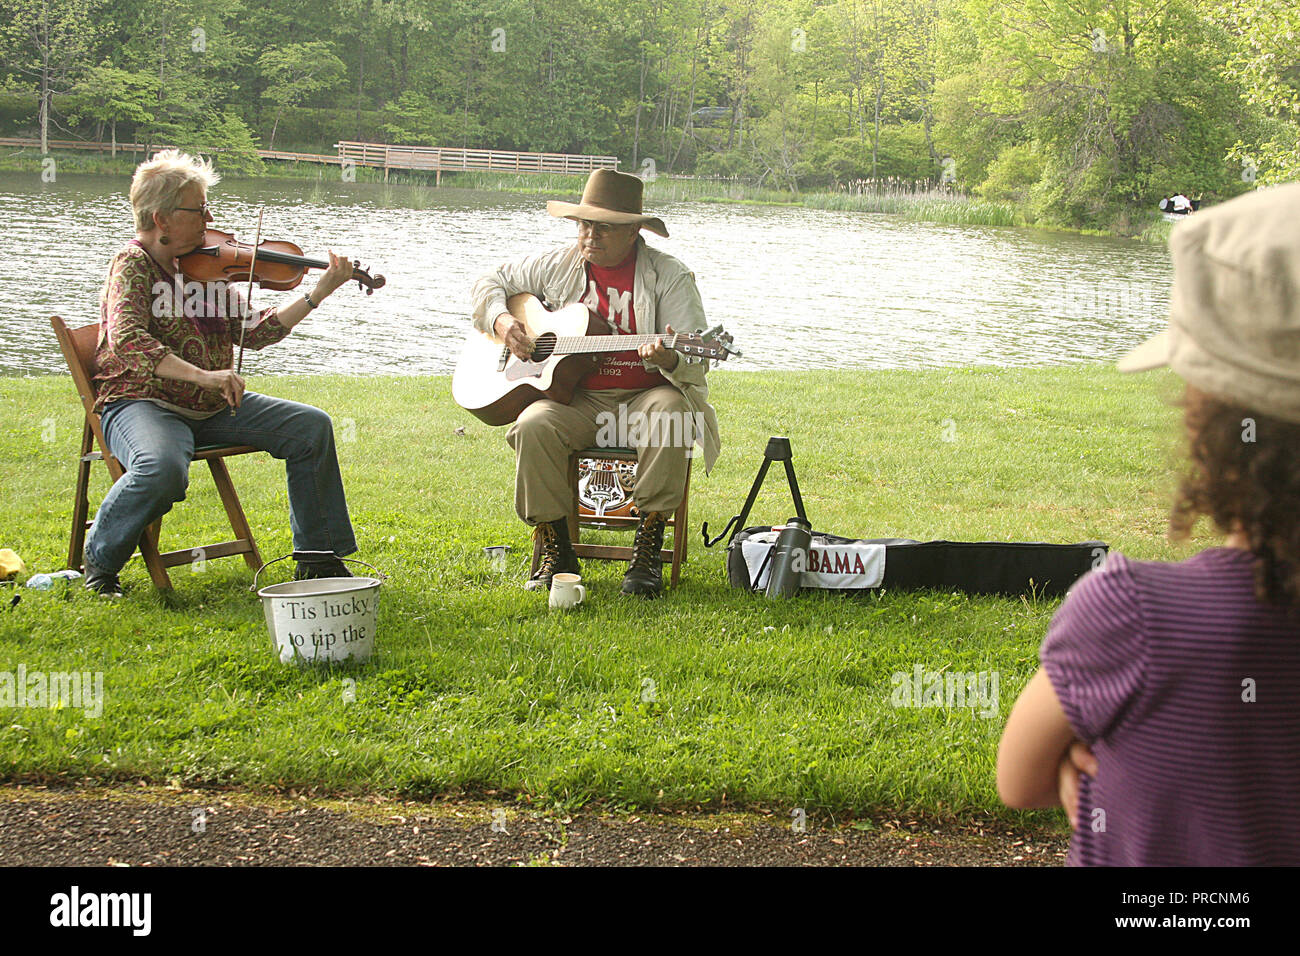 Woman with violin and man with guitar performing outdoors by Abbott Lake on Virginia's Blue Ridge Parkway Stock Photo